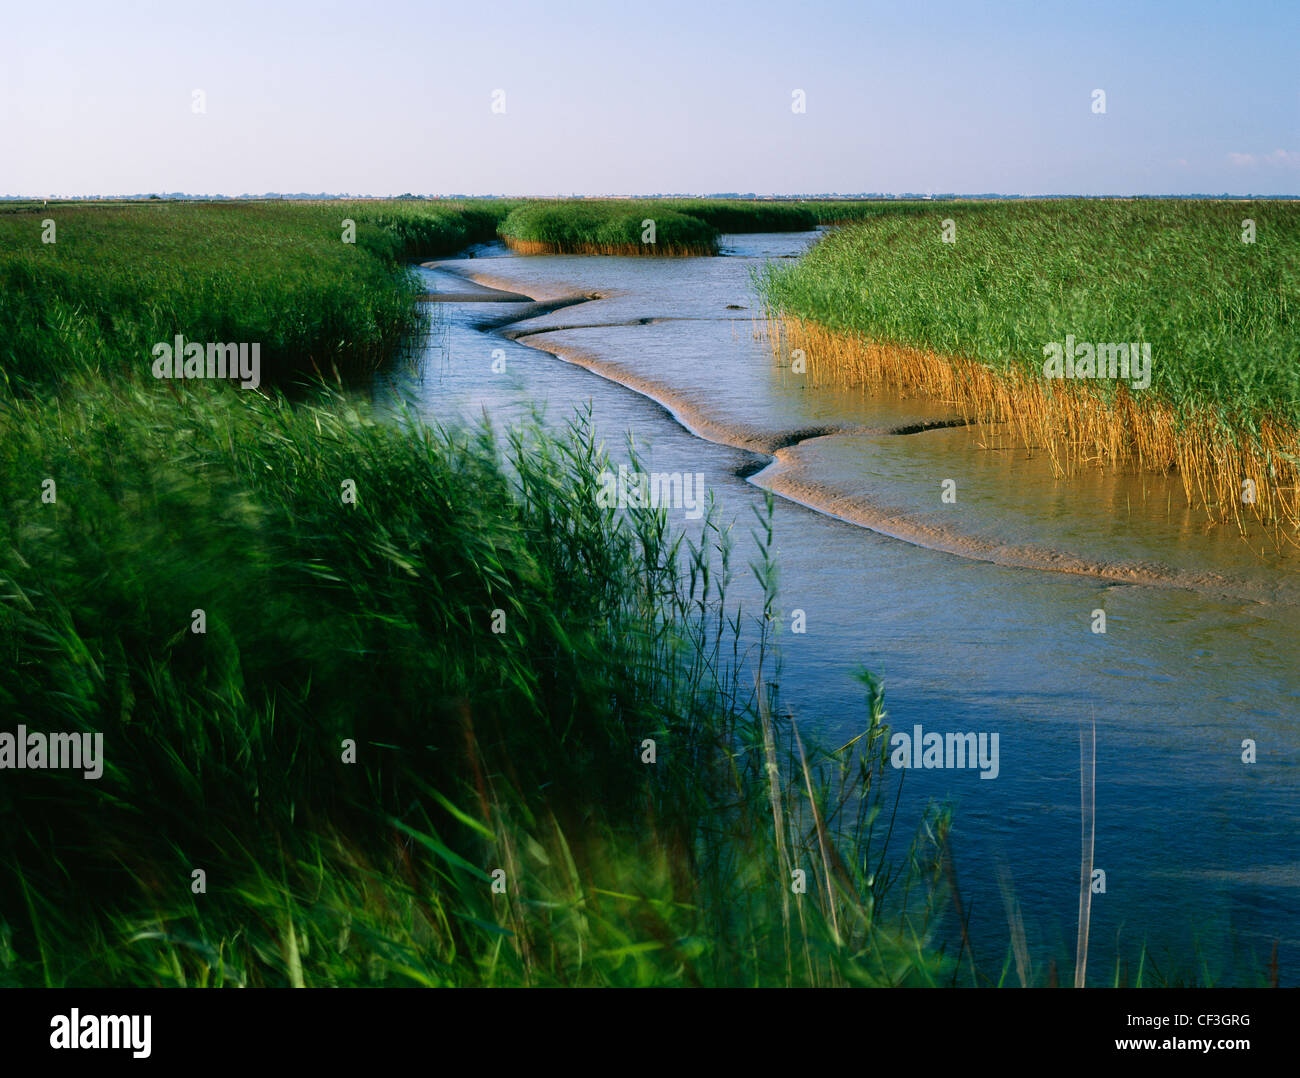 The northern end of the River Waveney, just west of Burgh Castle Roman fort, where it joins the River Yare in Breydon - Stock Image